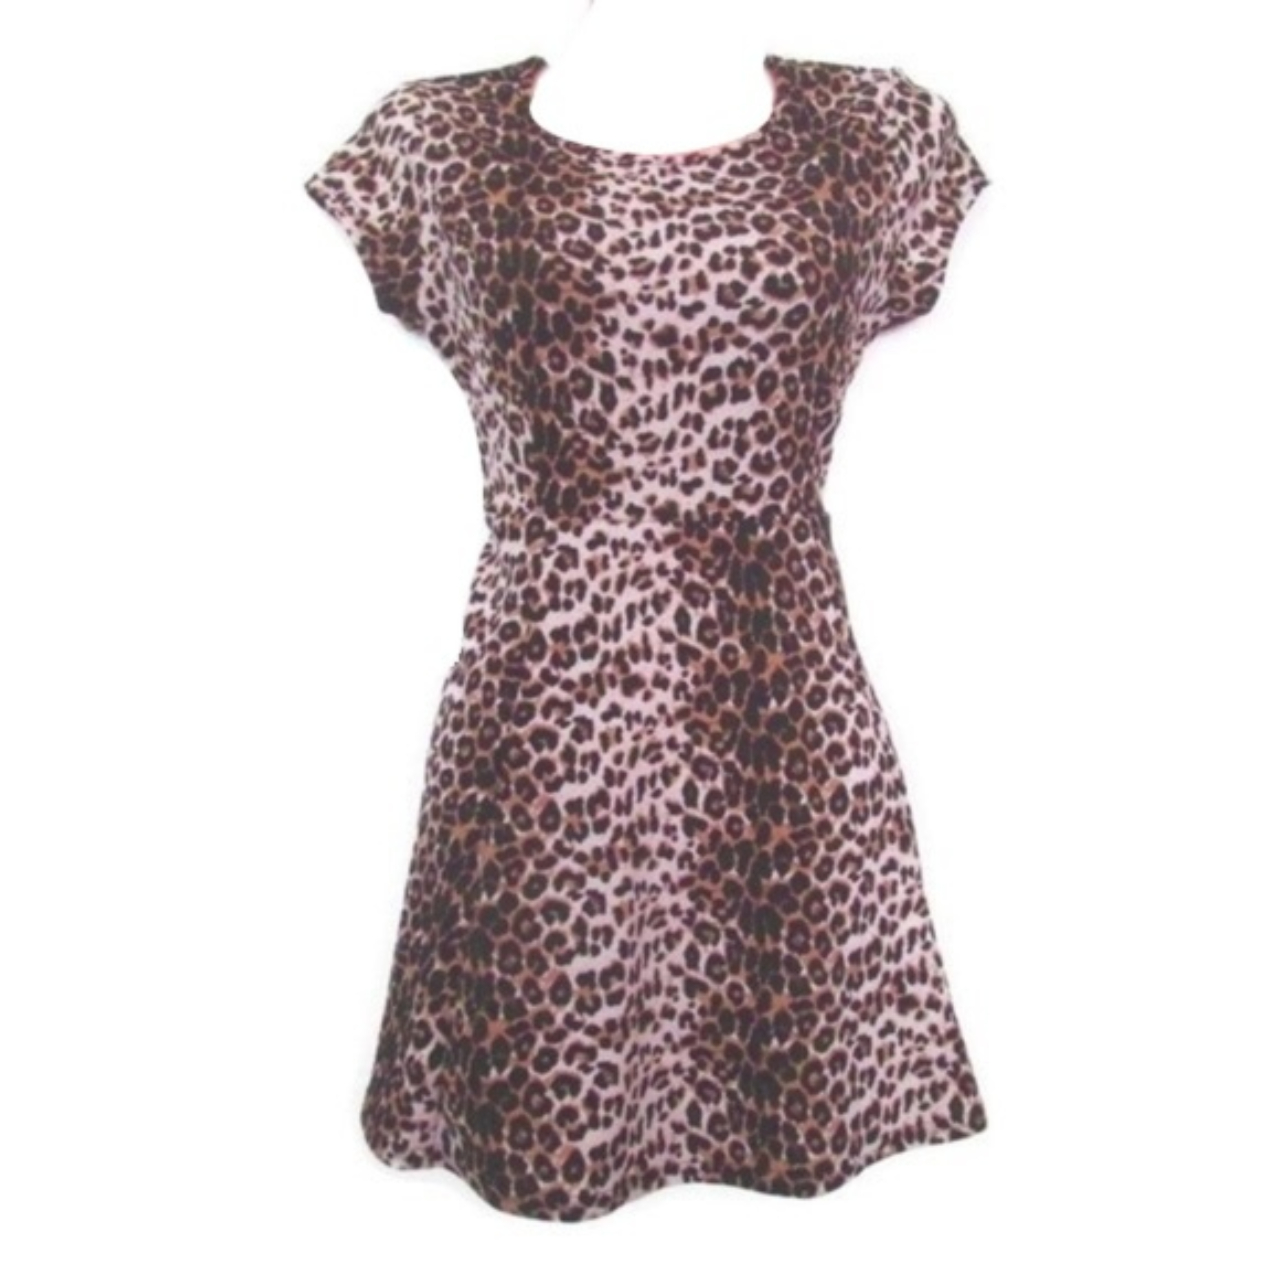 Product Image 1 - nwt leopard print skater dress